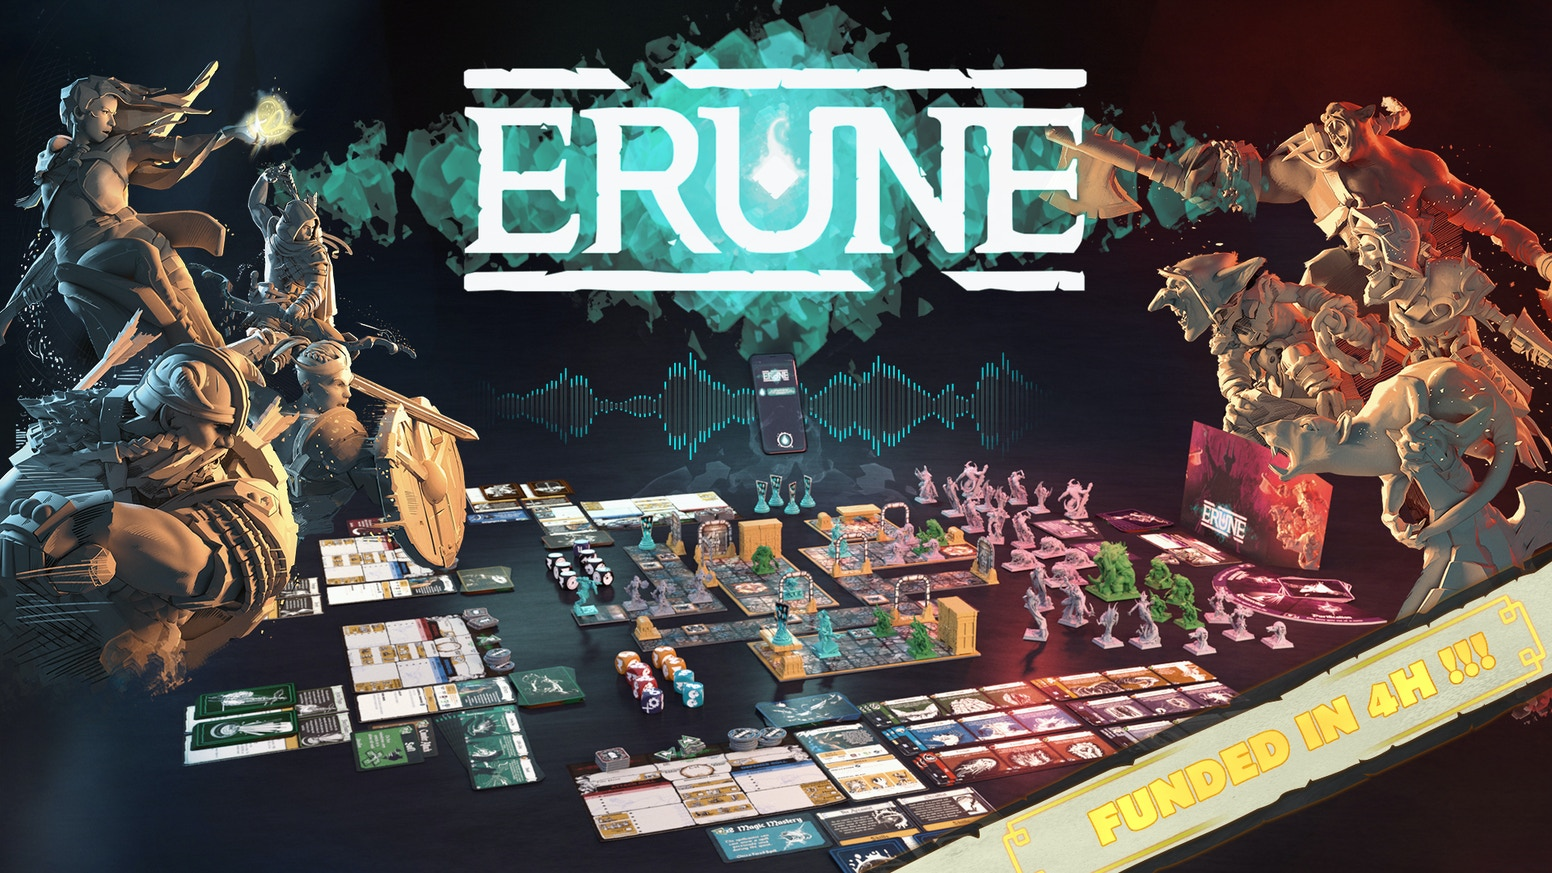 ⚔️ ERUNE ! A new kind of Dungeon crawler assisted by a voice-driven application, inspired by Heroquest !⚔️